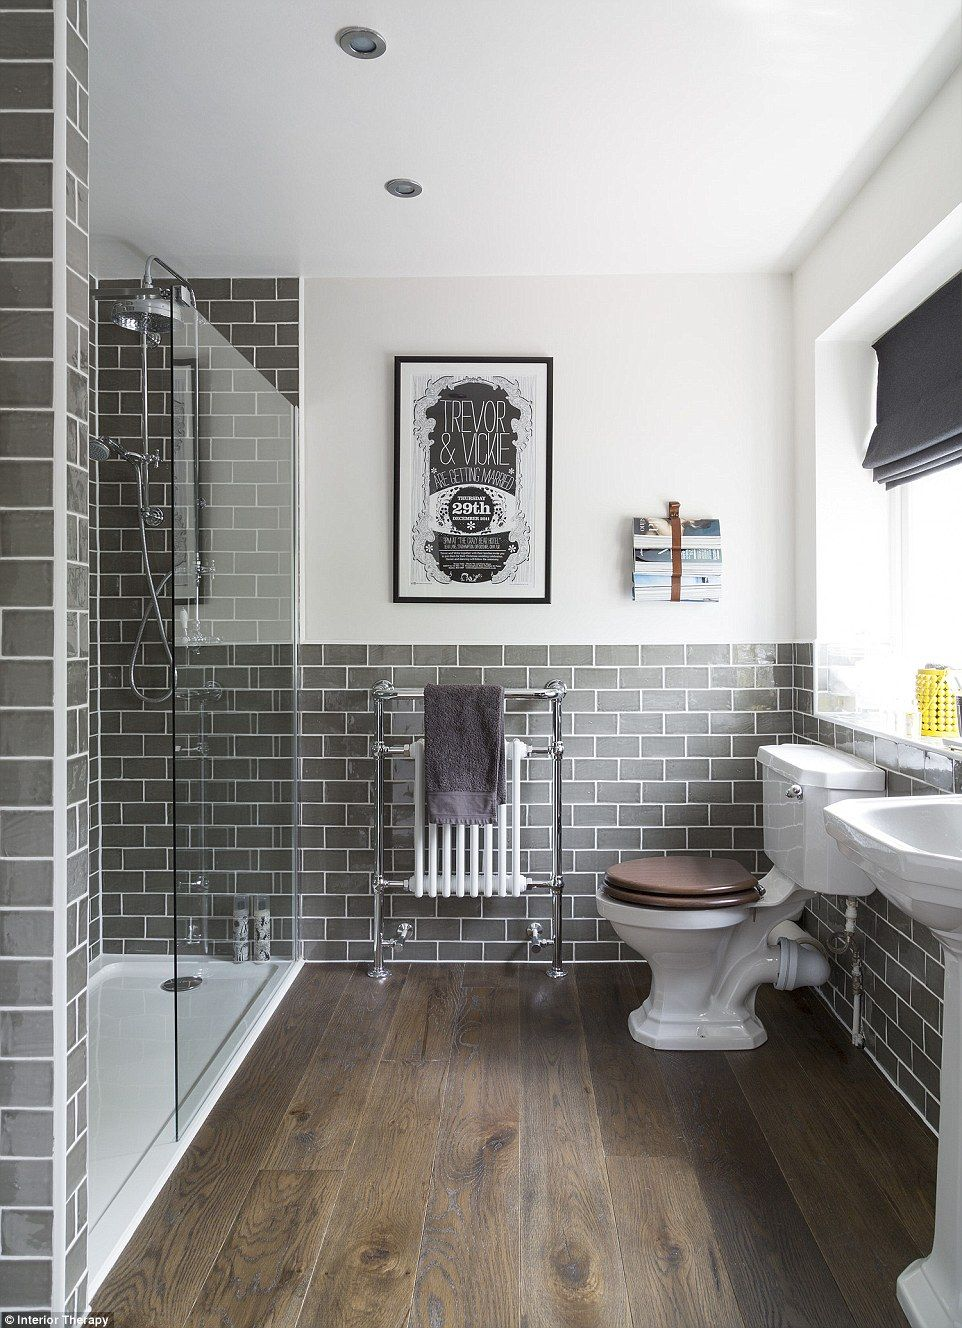 25 Stunning Bathroom Decor Design Ideas To Inspire You Grey